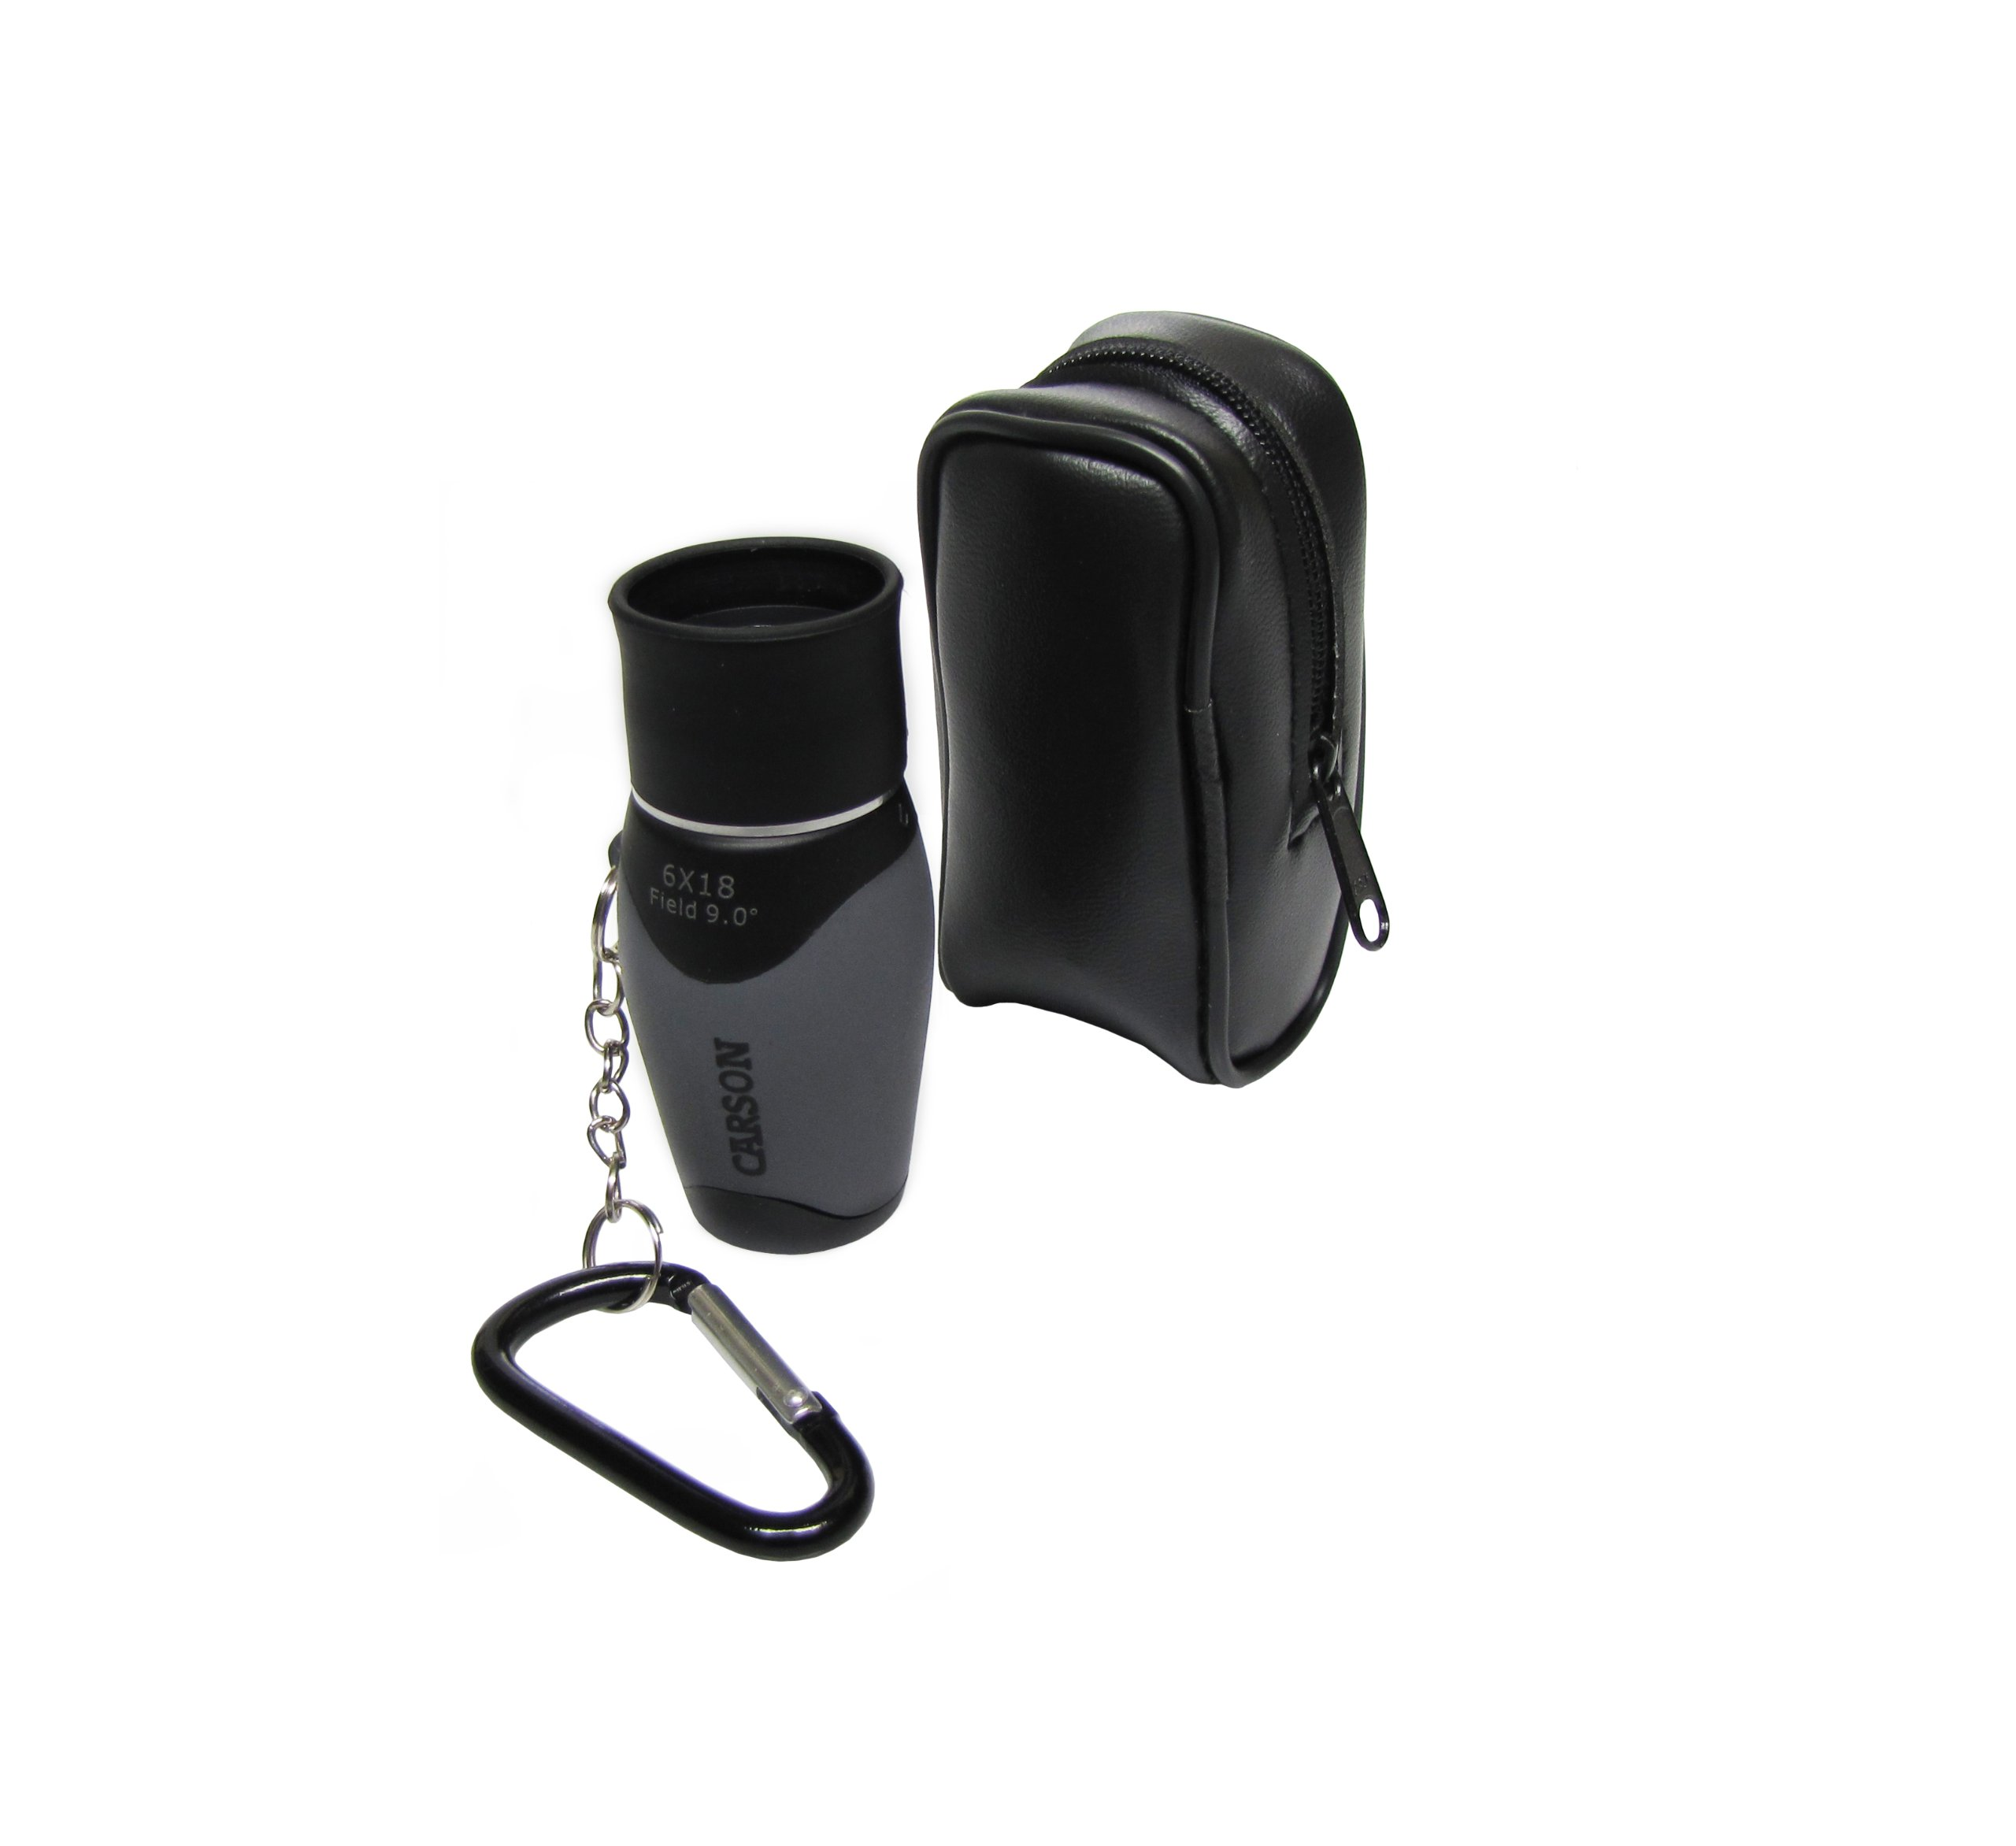 Carson MiniMight 6x18mm Pocket Monocular with Carabiner Clip (MM-618) by Carson